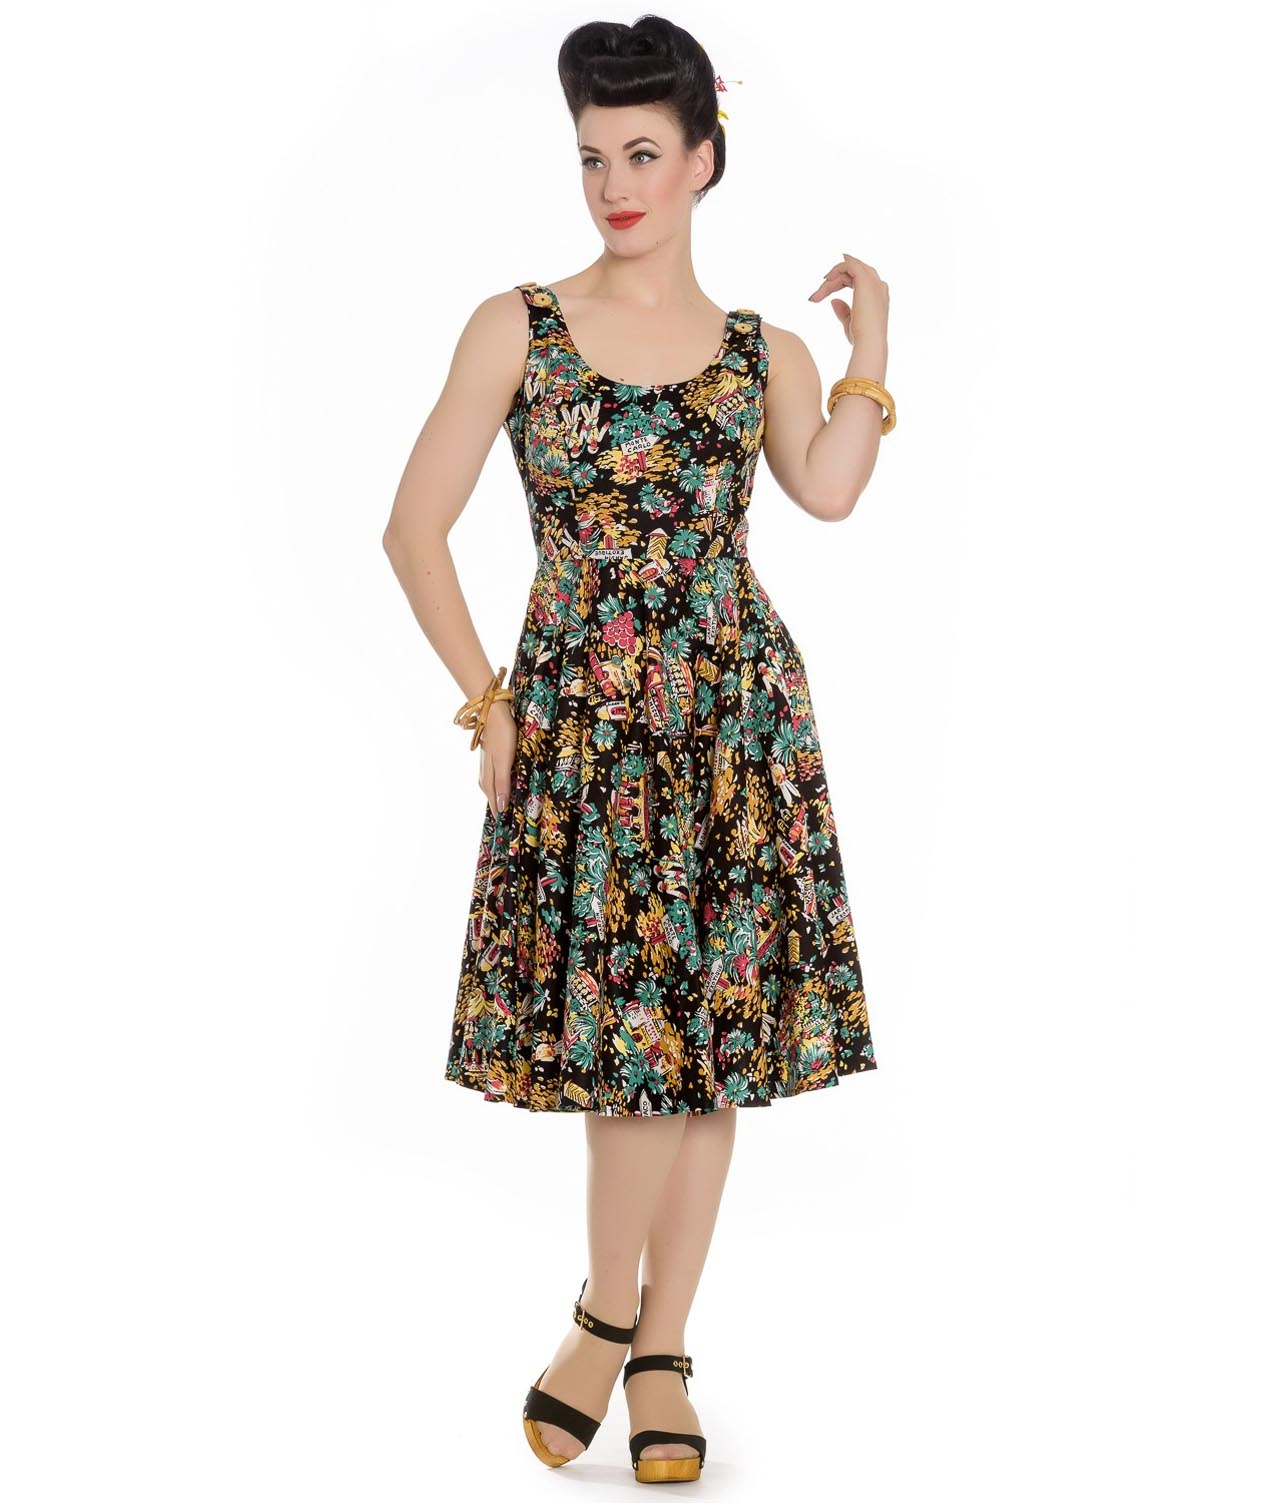 Hell-Bunny-Summer-50s-Black-Dress-MONTE-CARLO-Tropical-Holiday-All-Sizes thumbnail 25